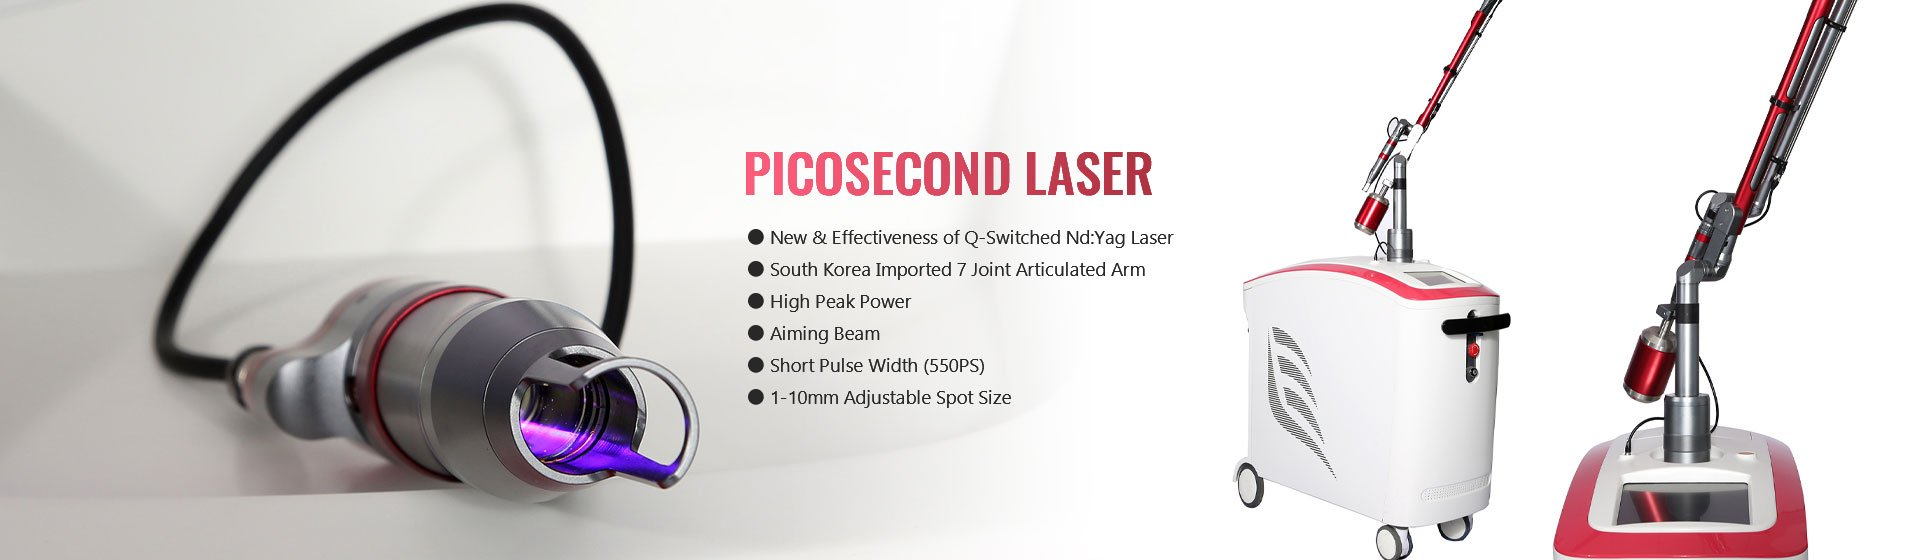 Banner-02-PICOSECOND-LASER